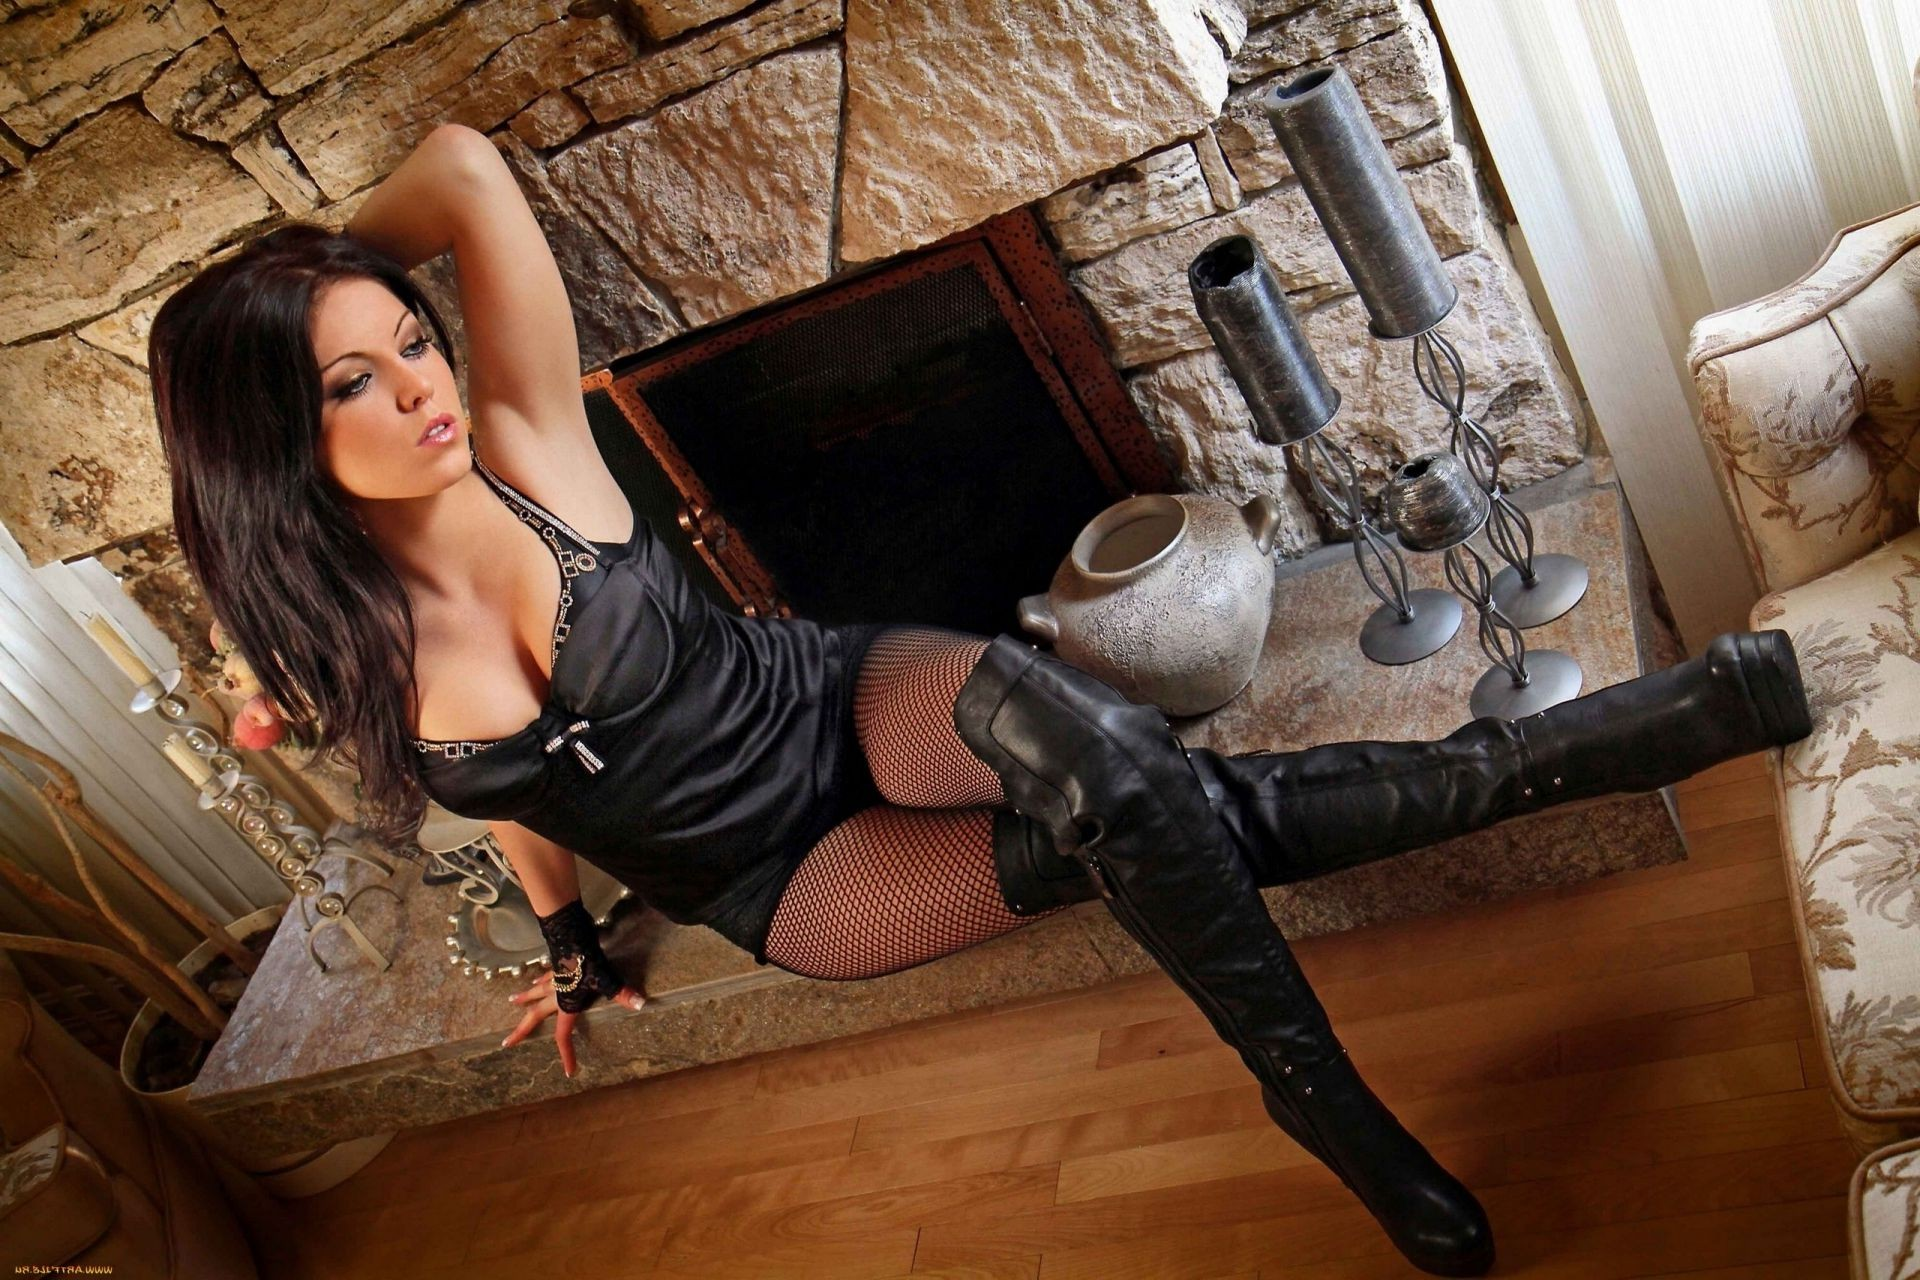 super beautiful girl by the fireplace